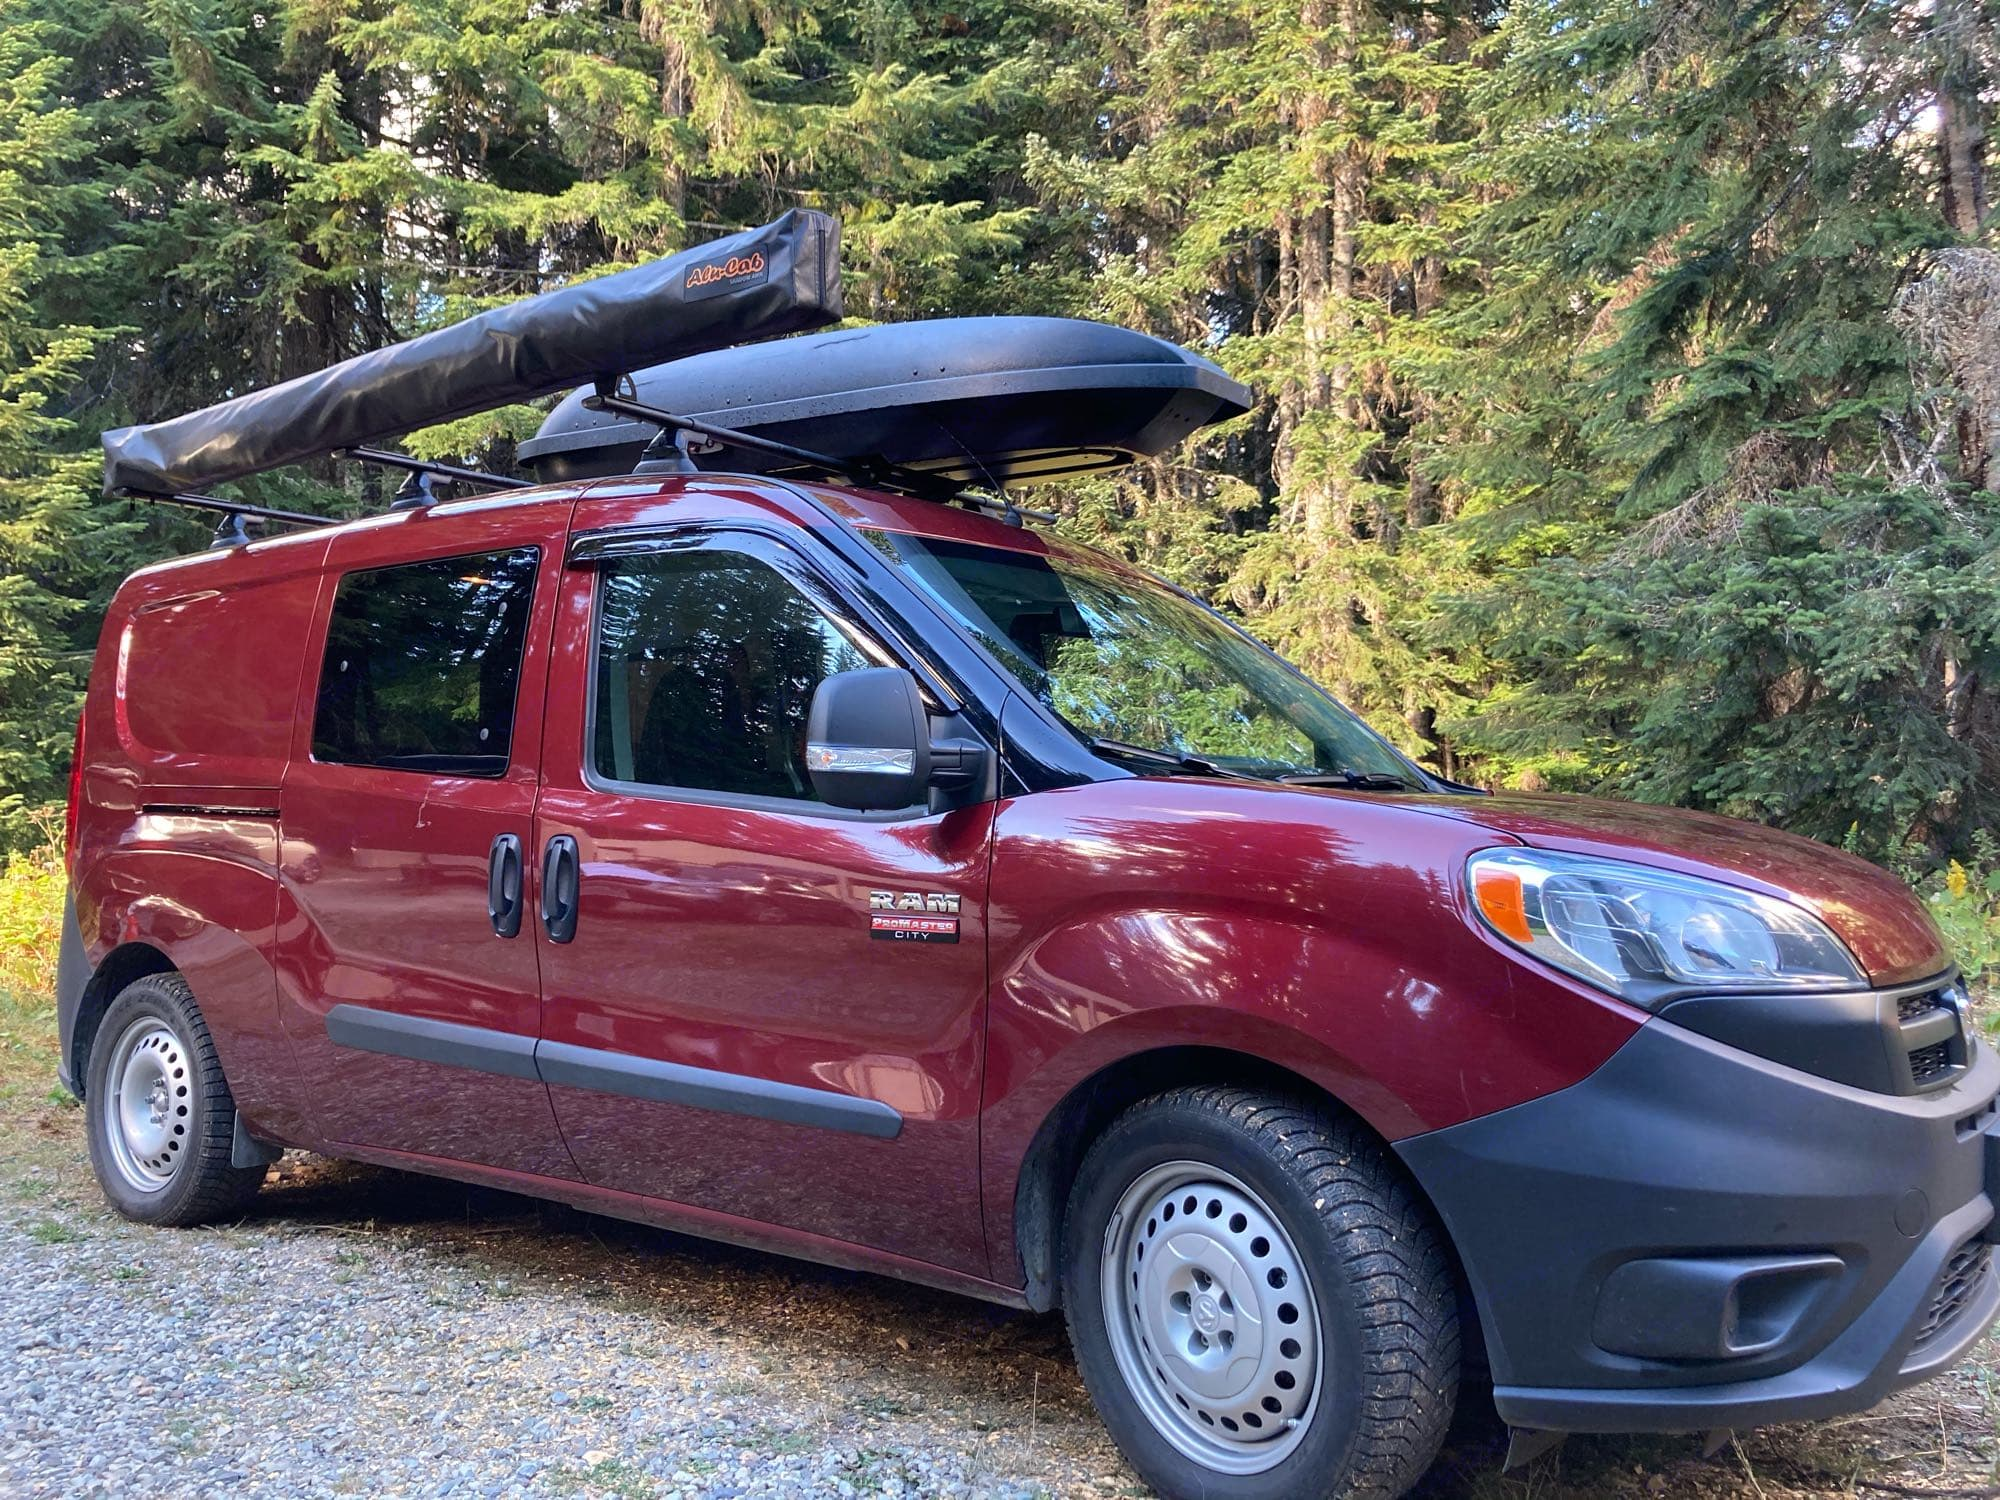 Ready for the road - under 30k miles but this van already has been to Alaska, Southern California, Glacier National Park, and all over WA and OR!. Ram Promaster City 2018